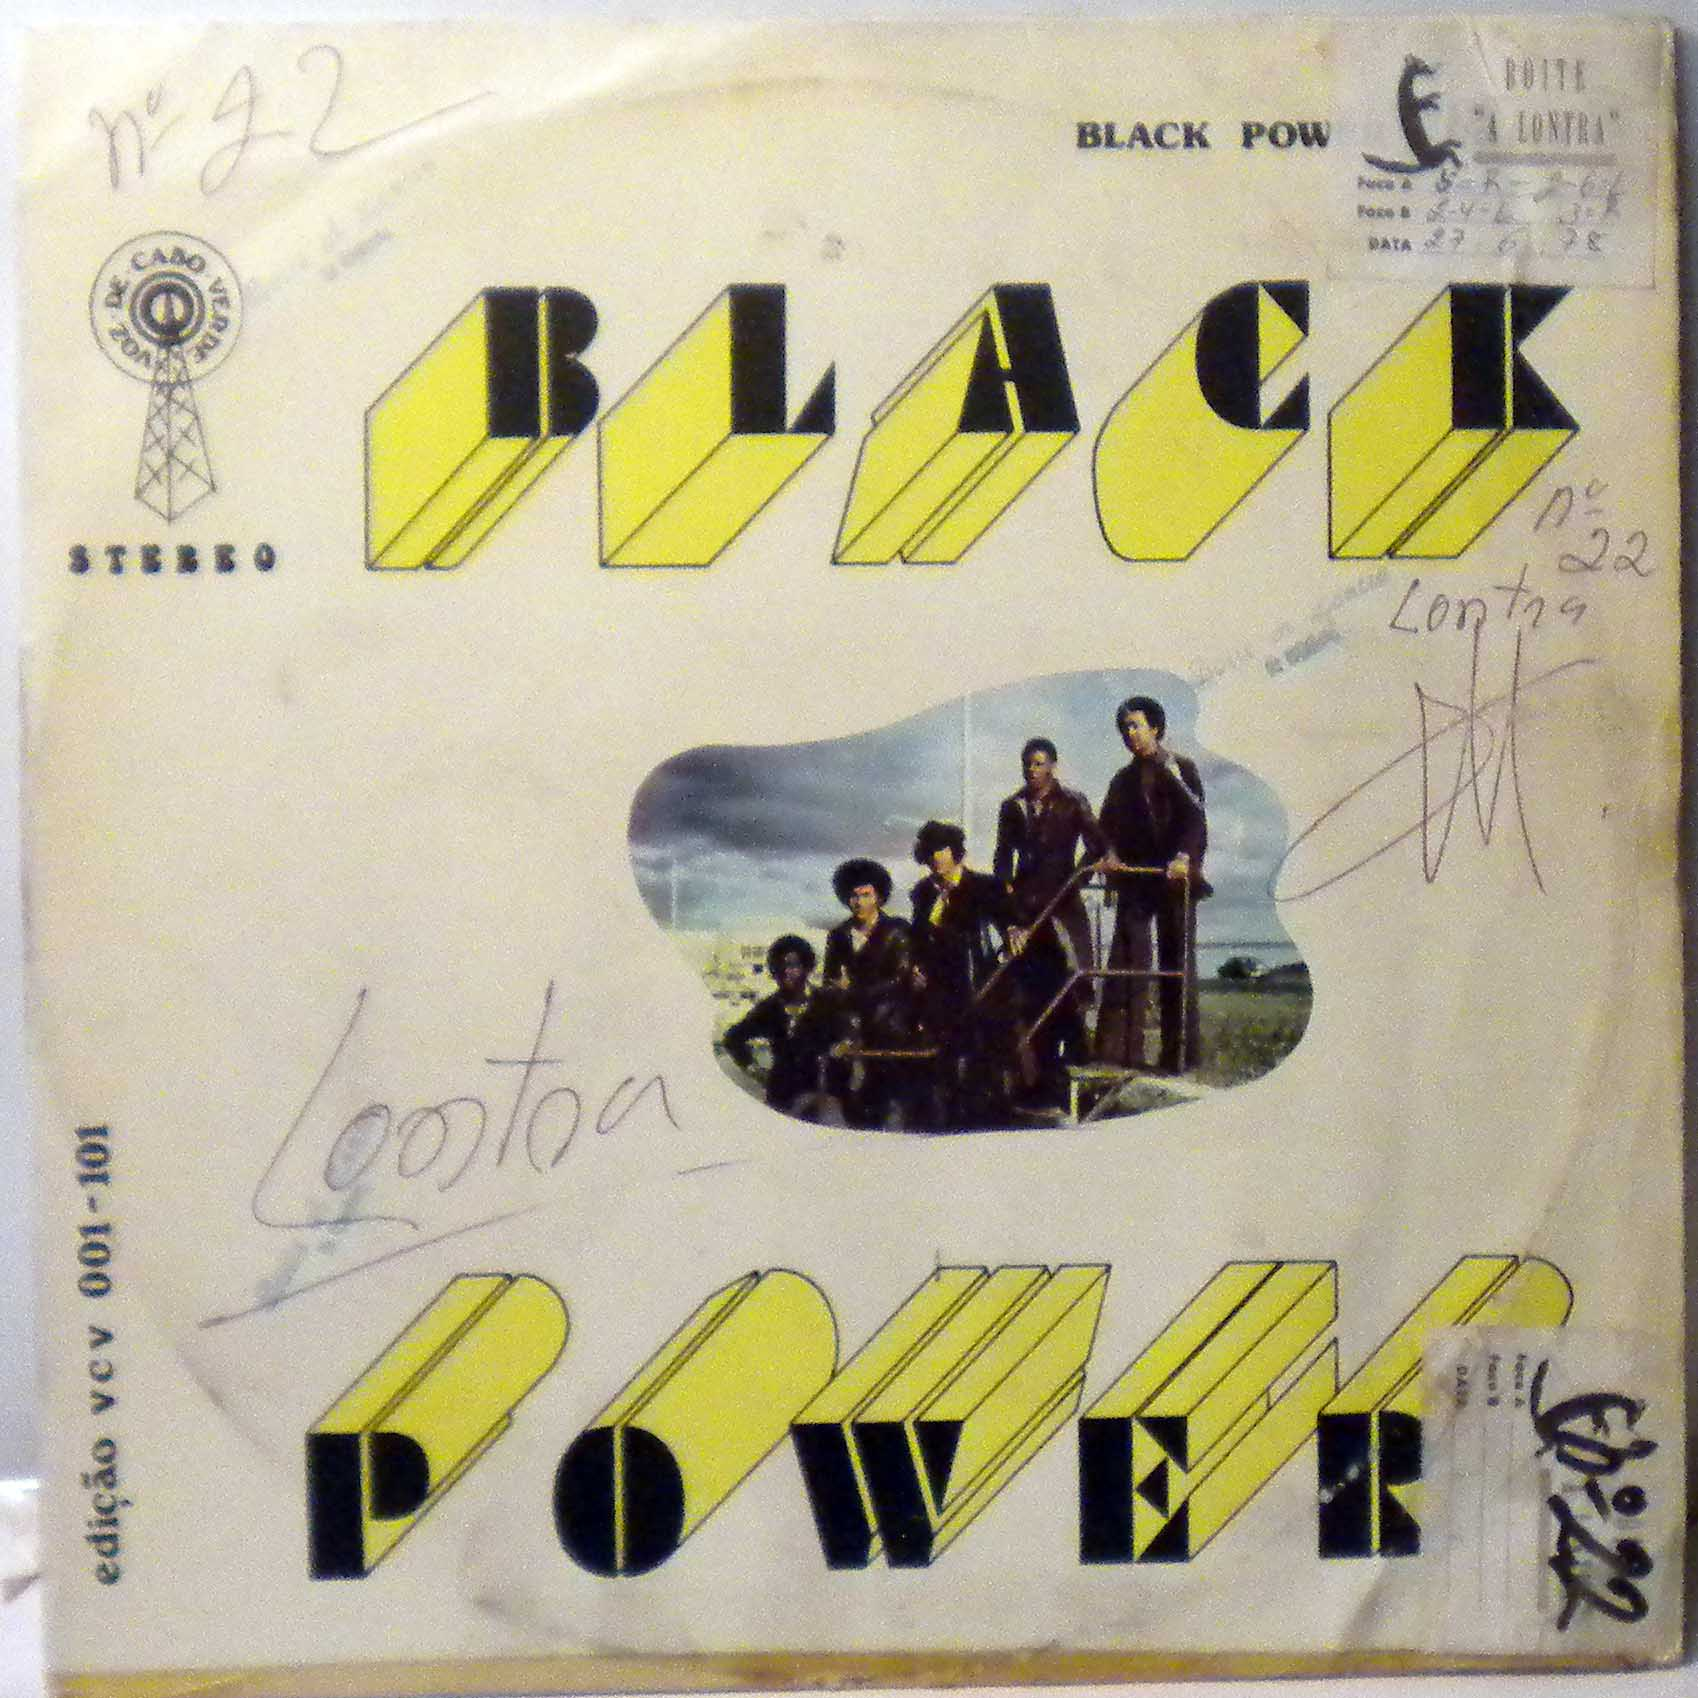 BLACK POWER - Same - LP